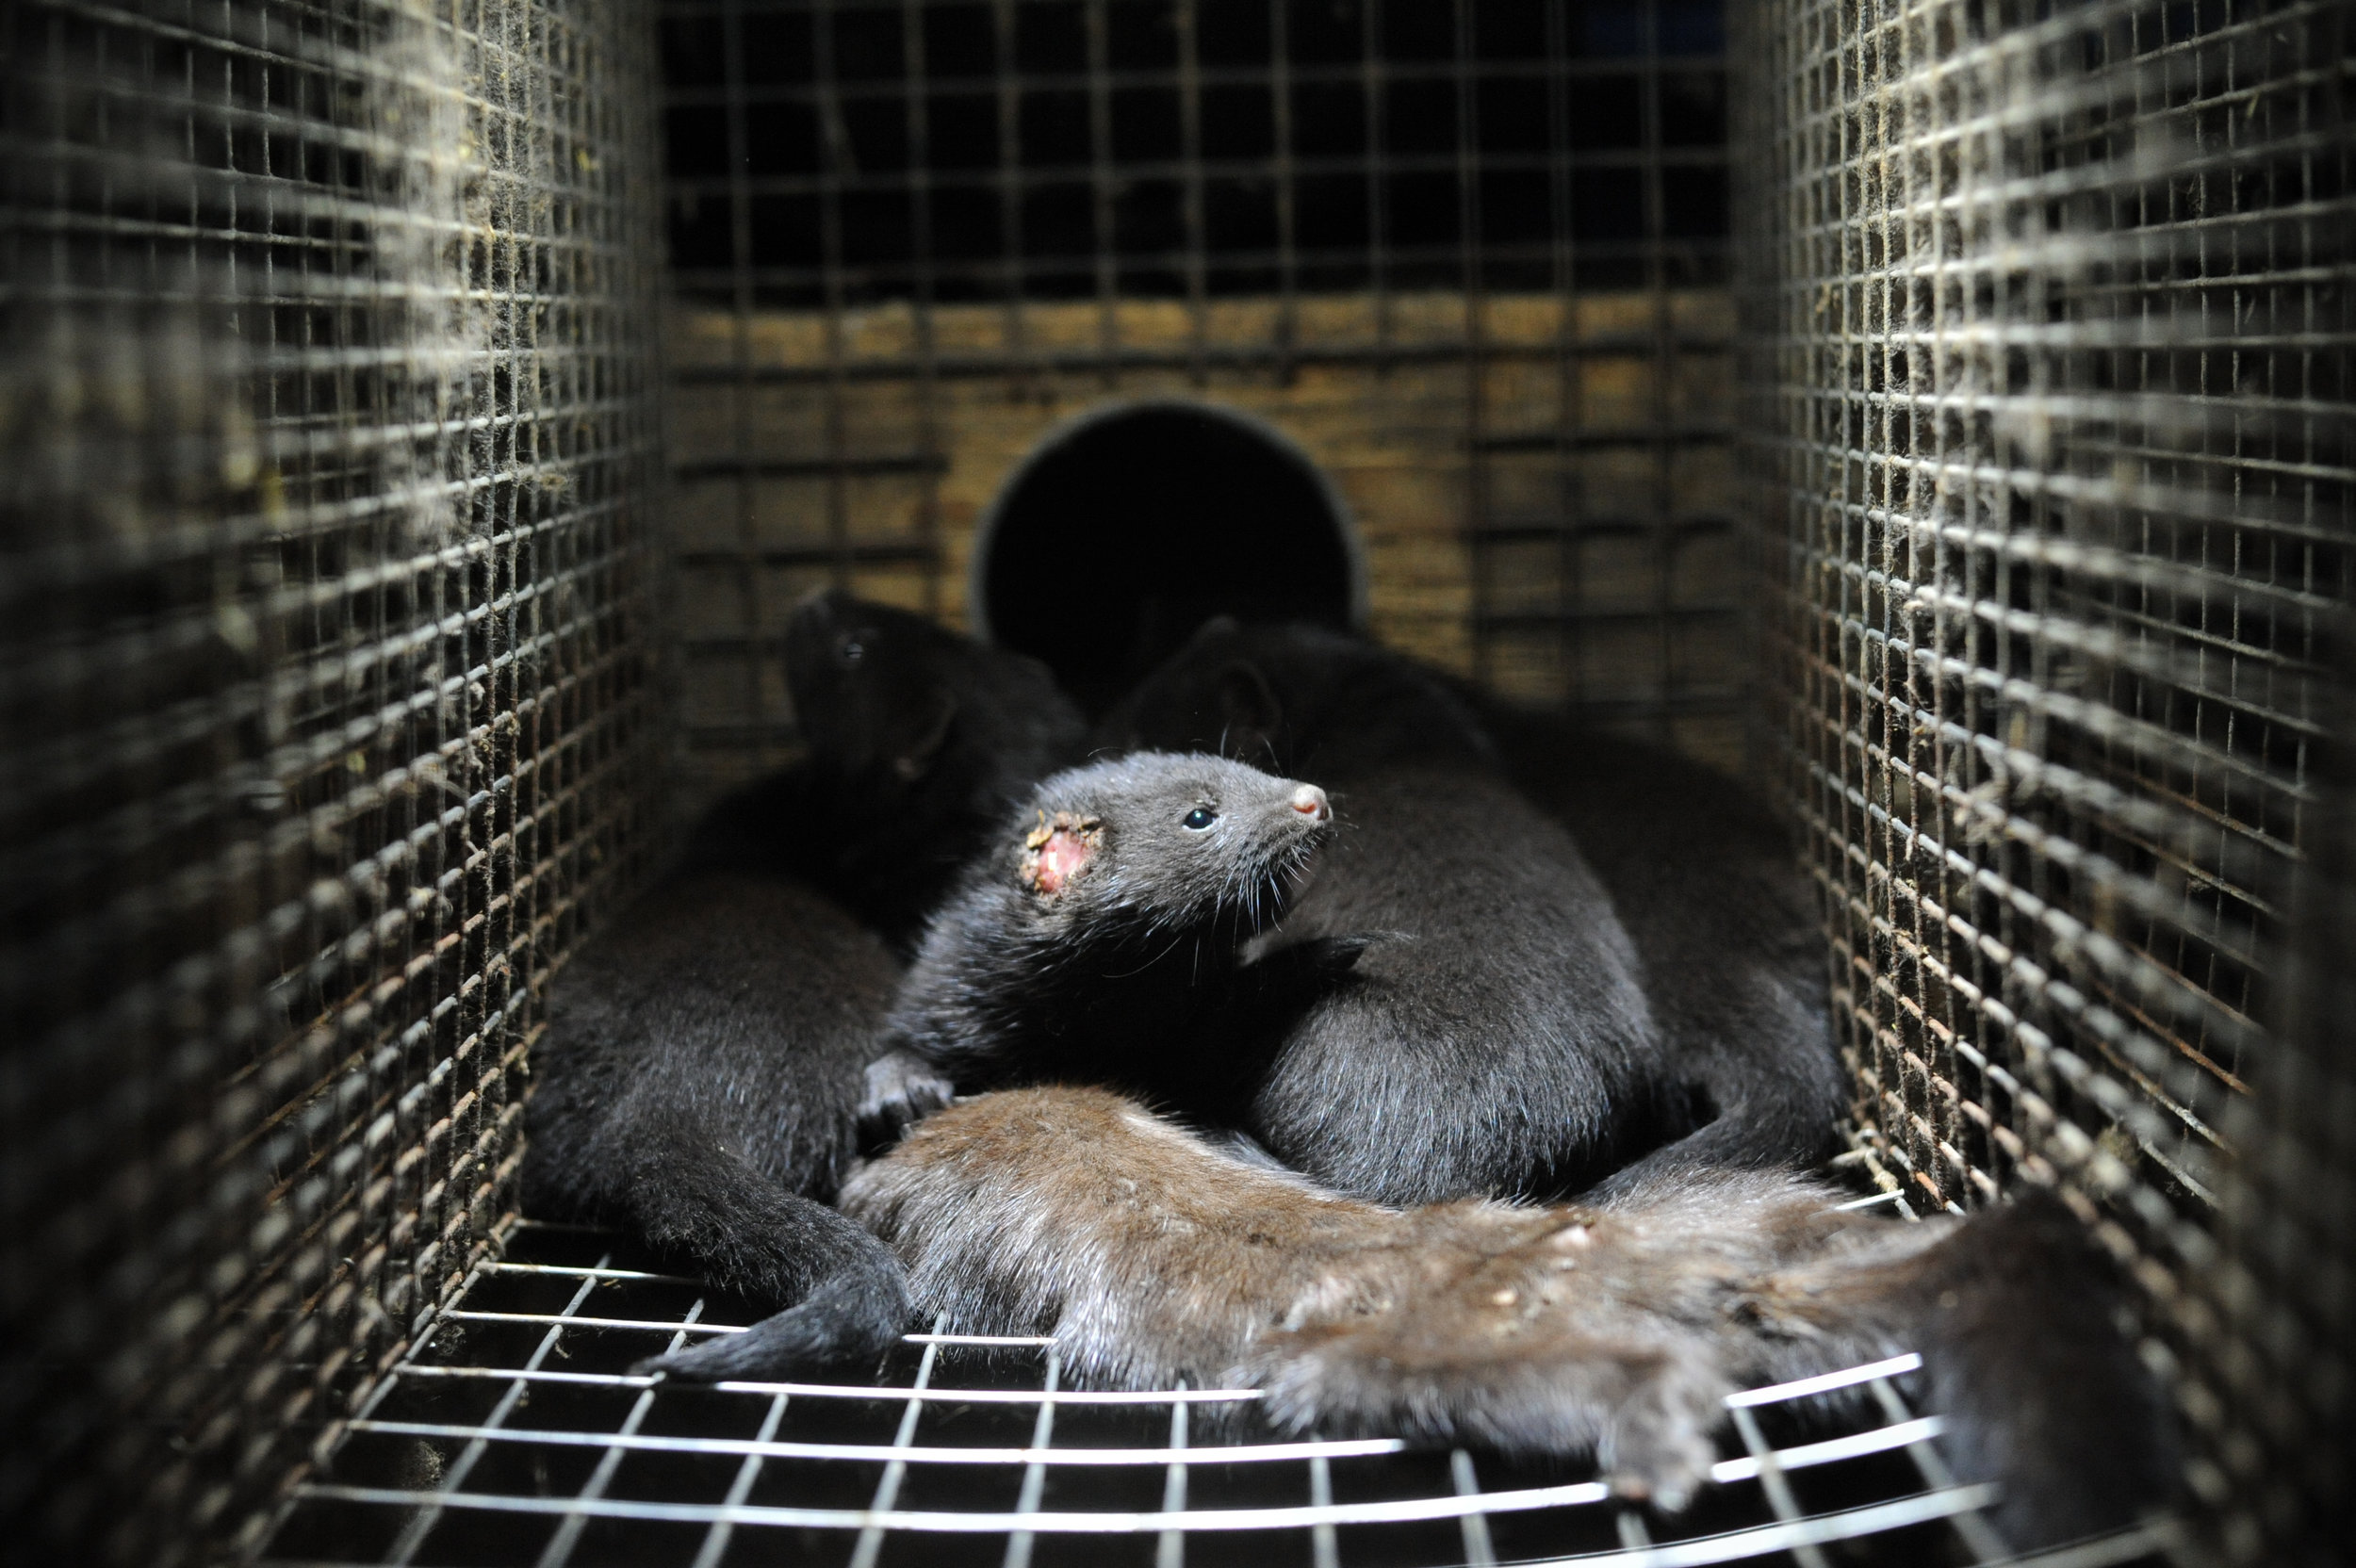 Injured mink kits with their dead mother on a fur farm in Europe. ©Jo-Anne McArthur/WeAnimals